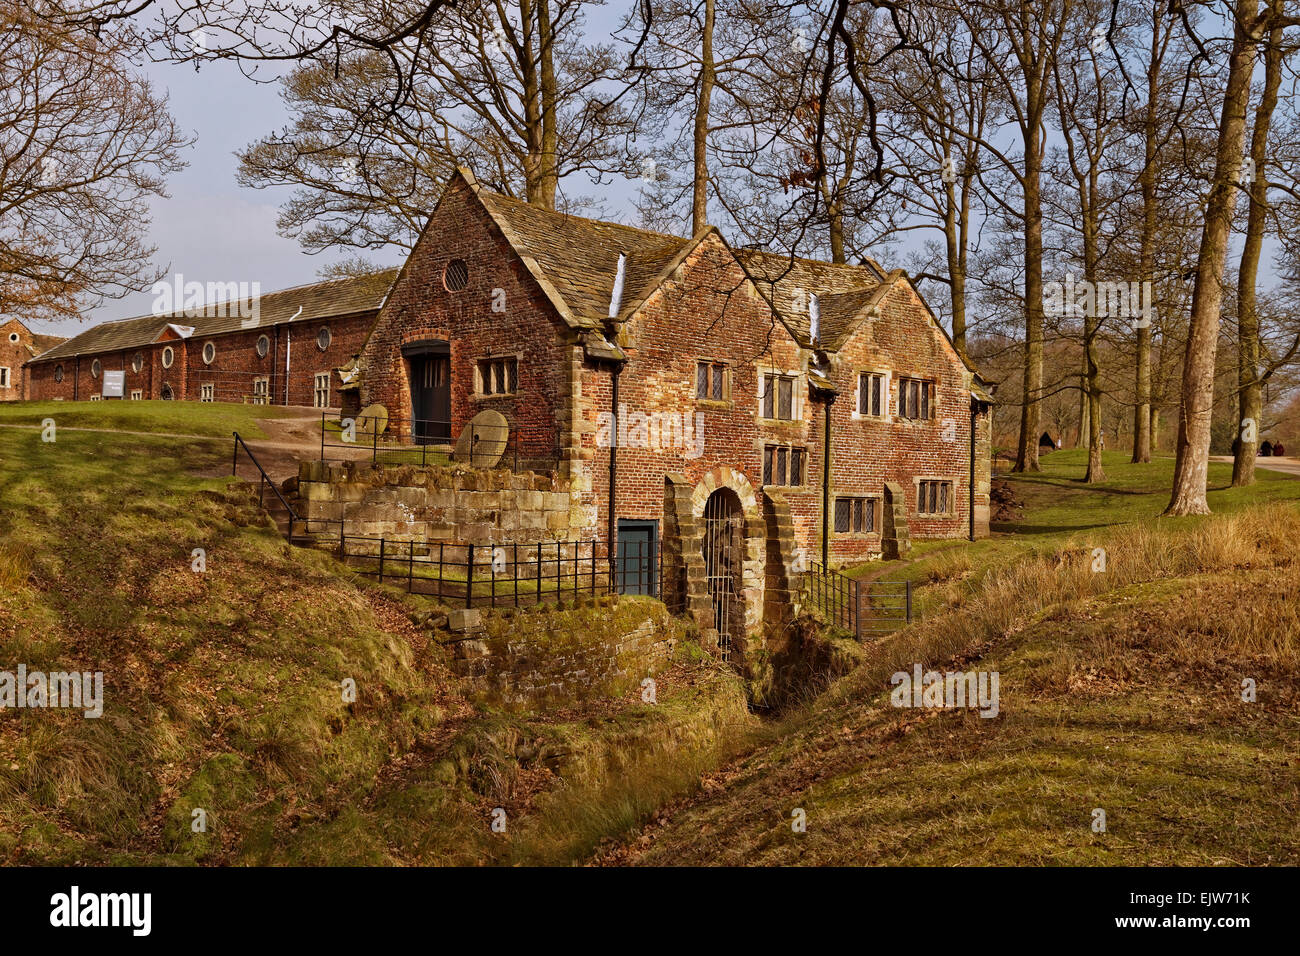 The Water Mill of Dunham Massey Hall near Altrincham, Trafford, Greater Manchester County and formerly in Cheshire. - Stock Image